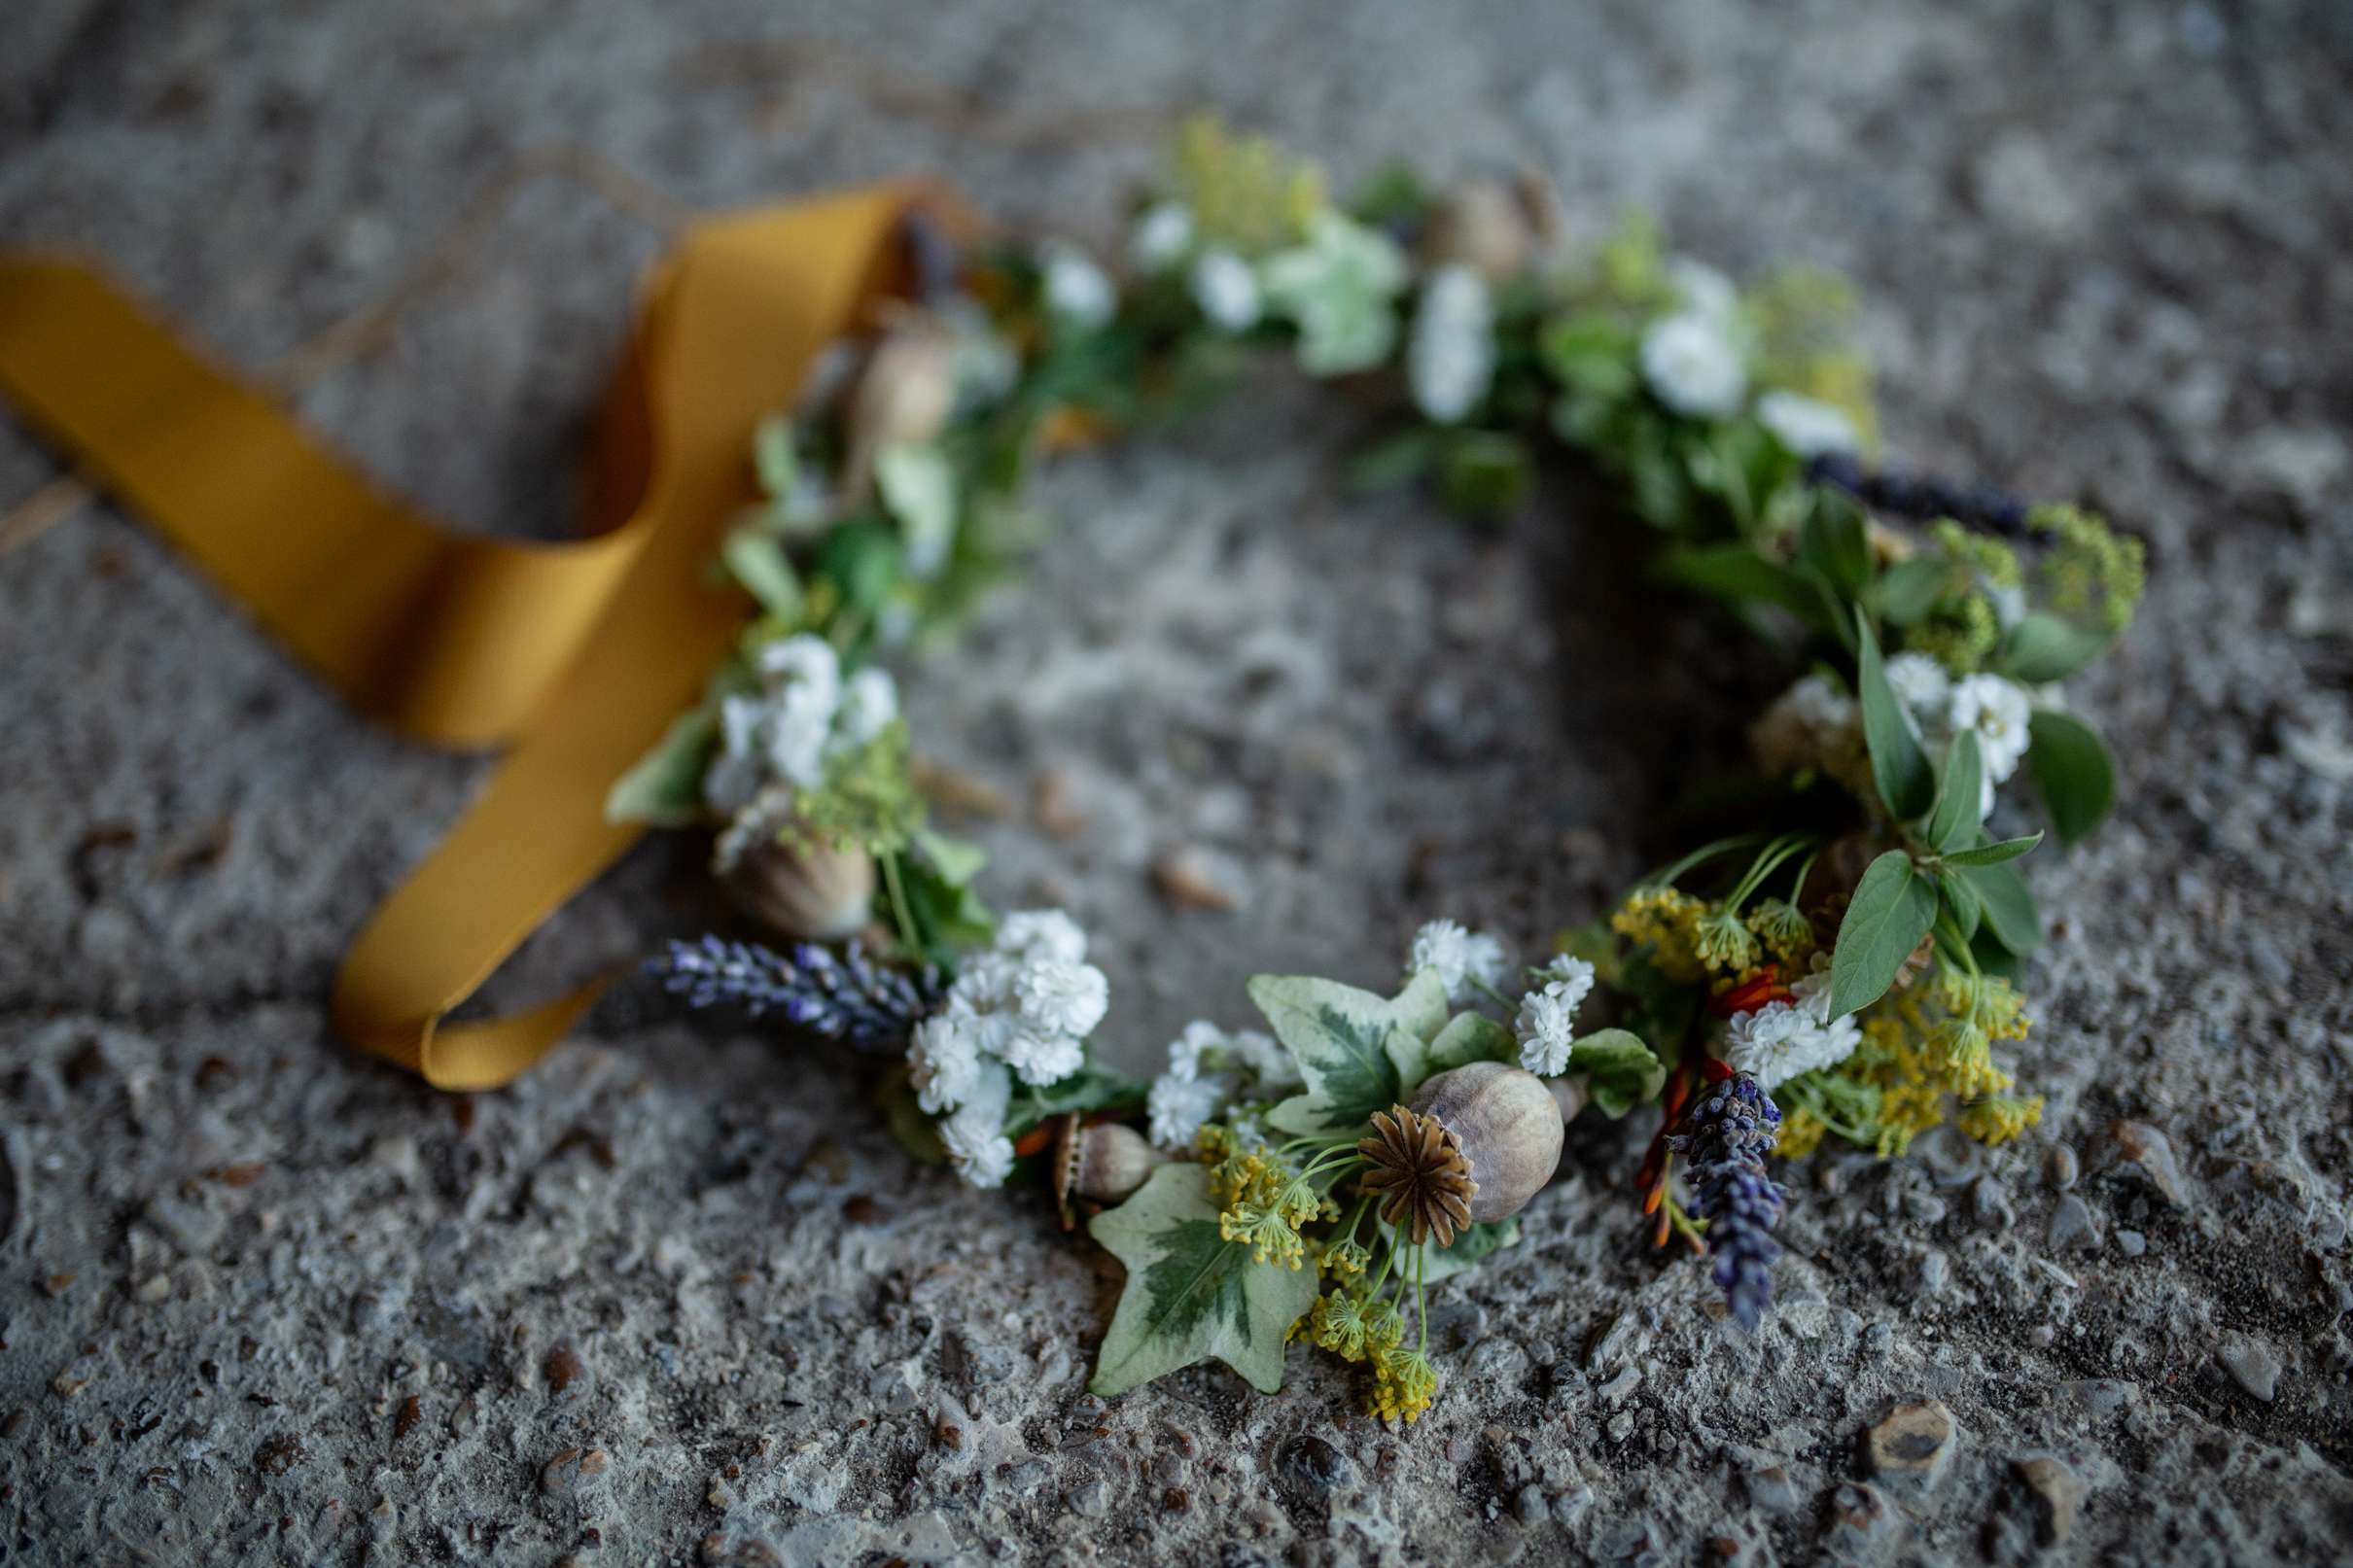 A wedding photo in Chichester of a rustic floral headdres with ivy and poppy pods placed against a concrete backdrop, taken at Chidham barn